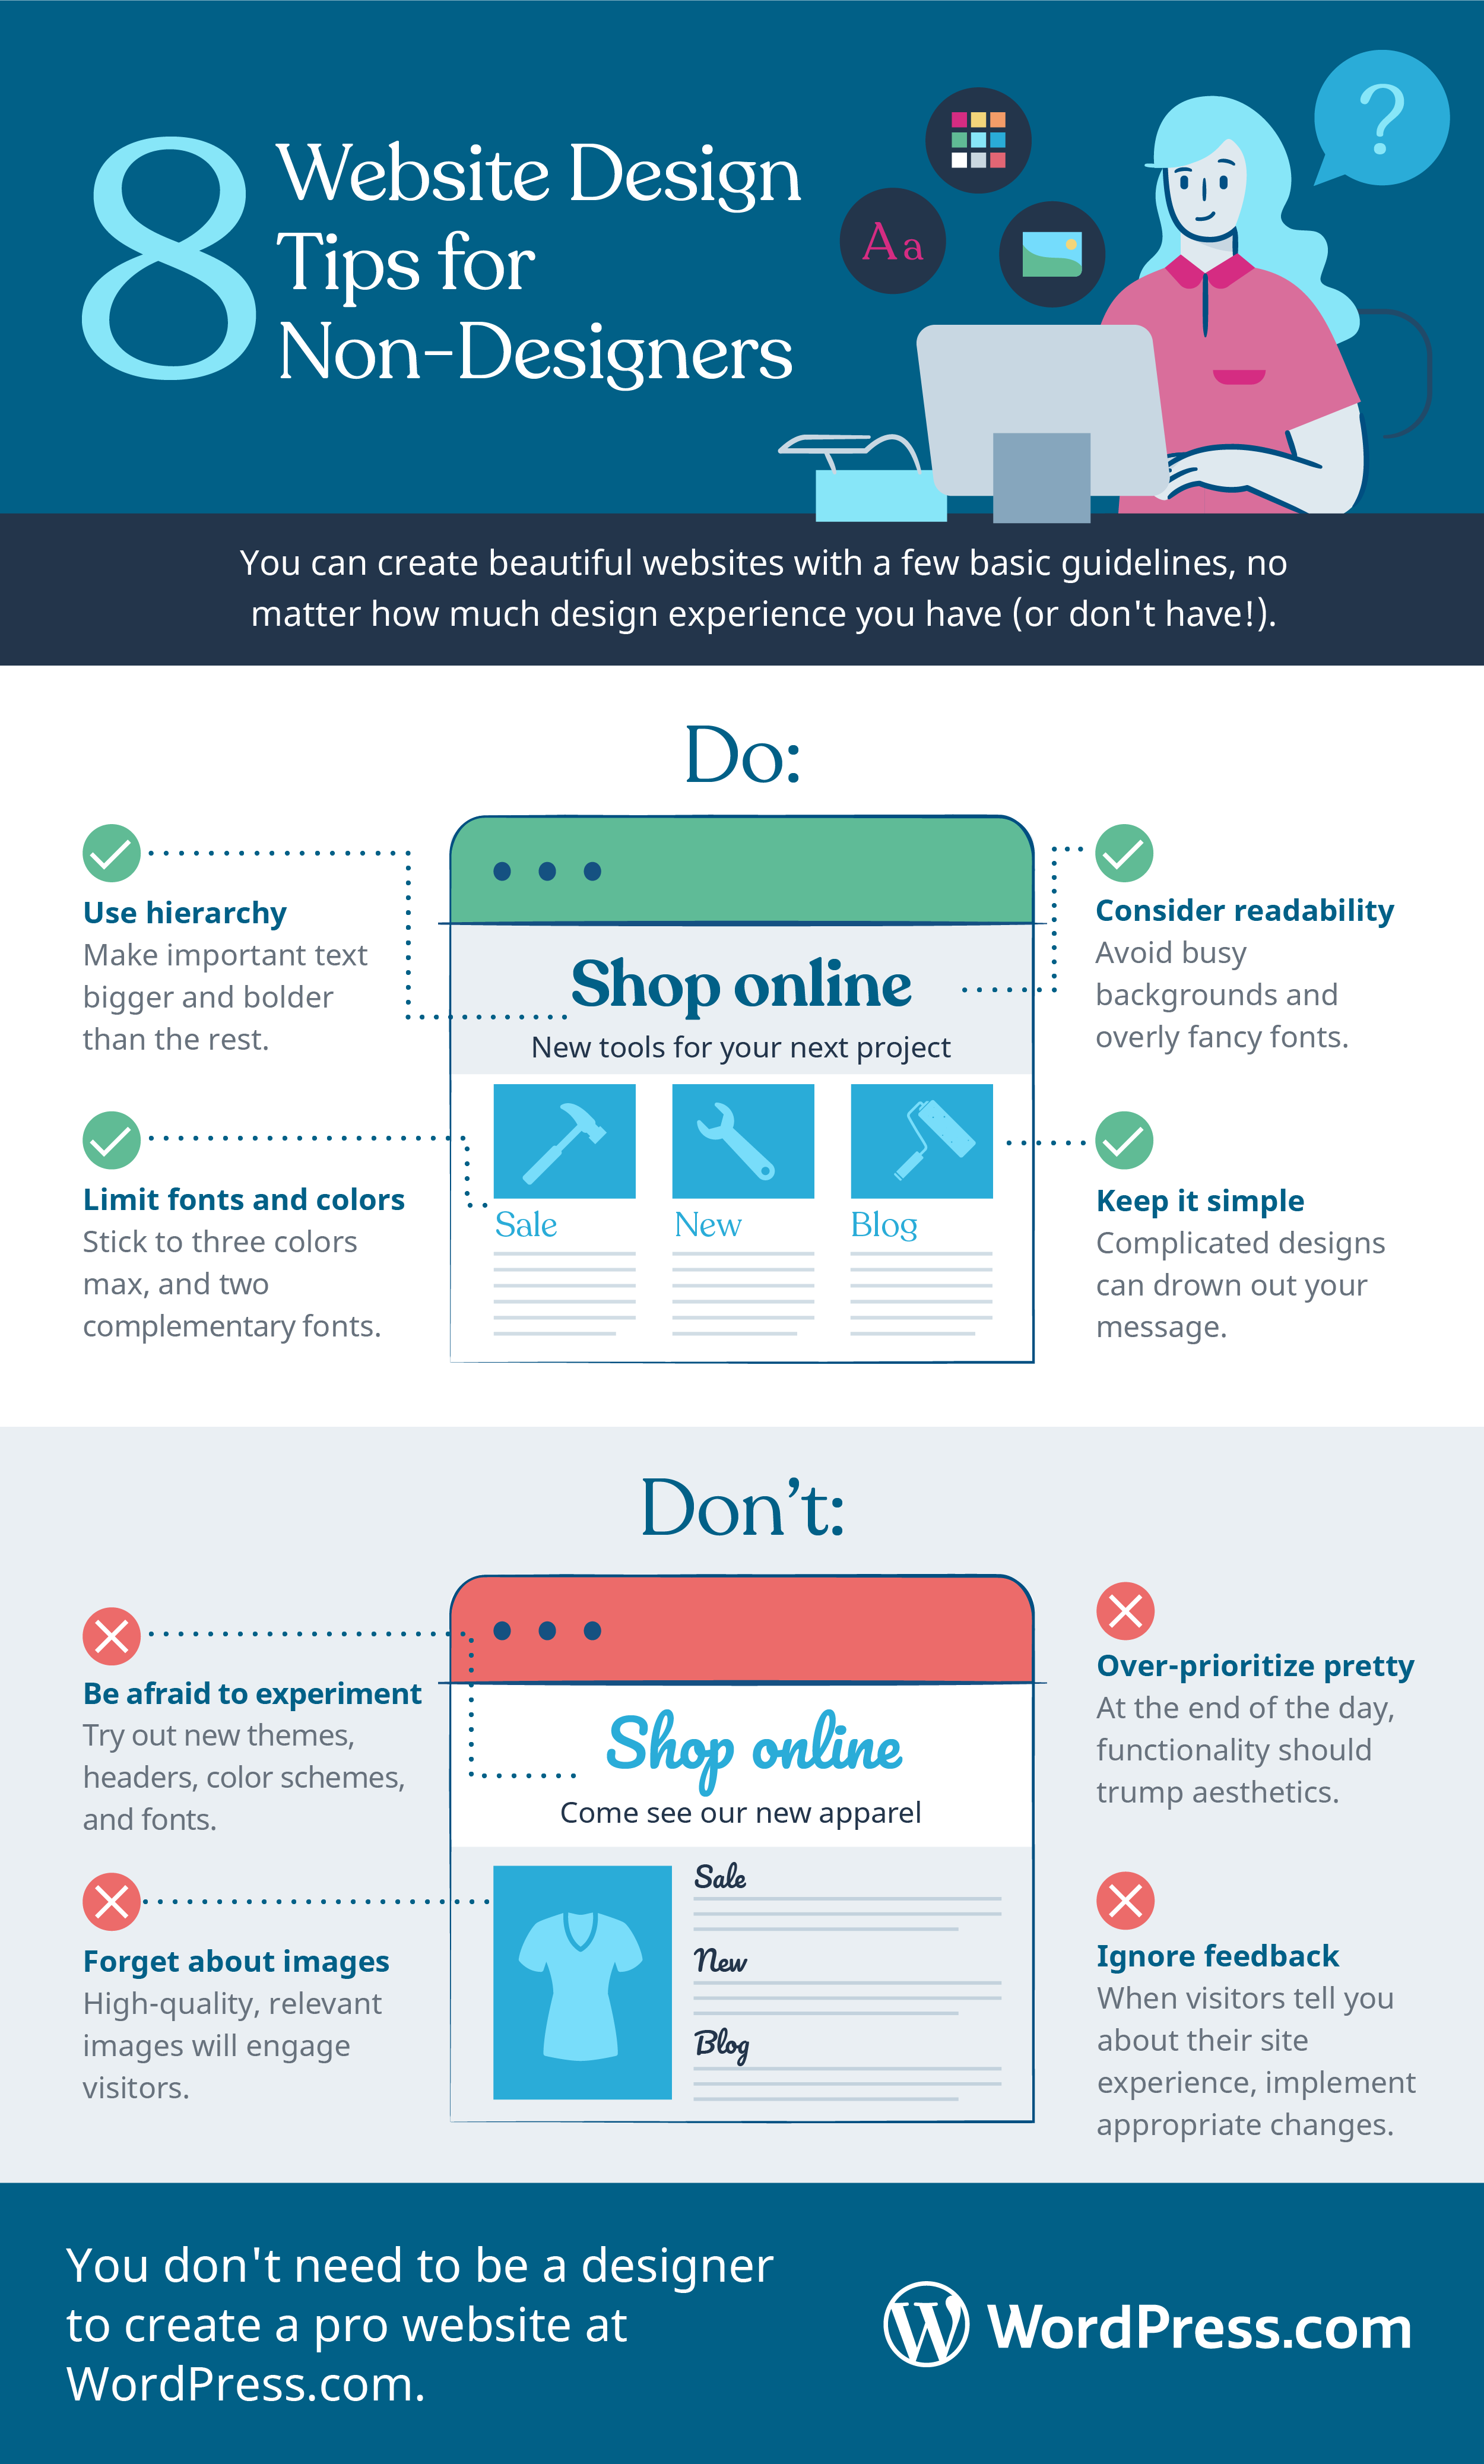 Website Design Best Practices and Tips for Non-Designers Infographic